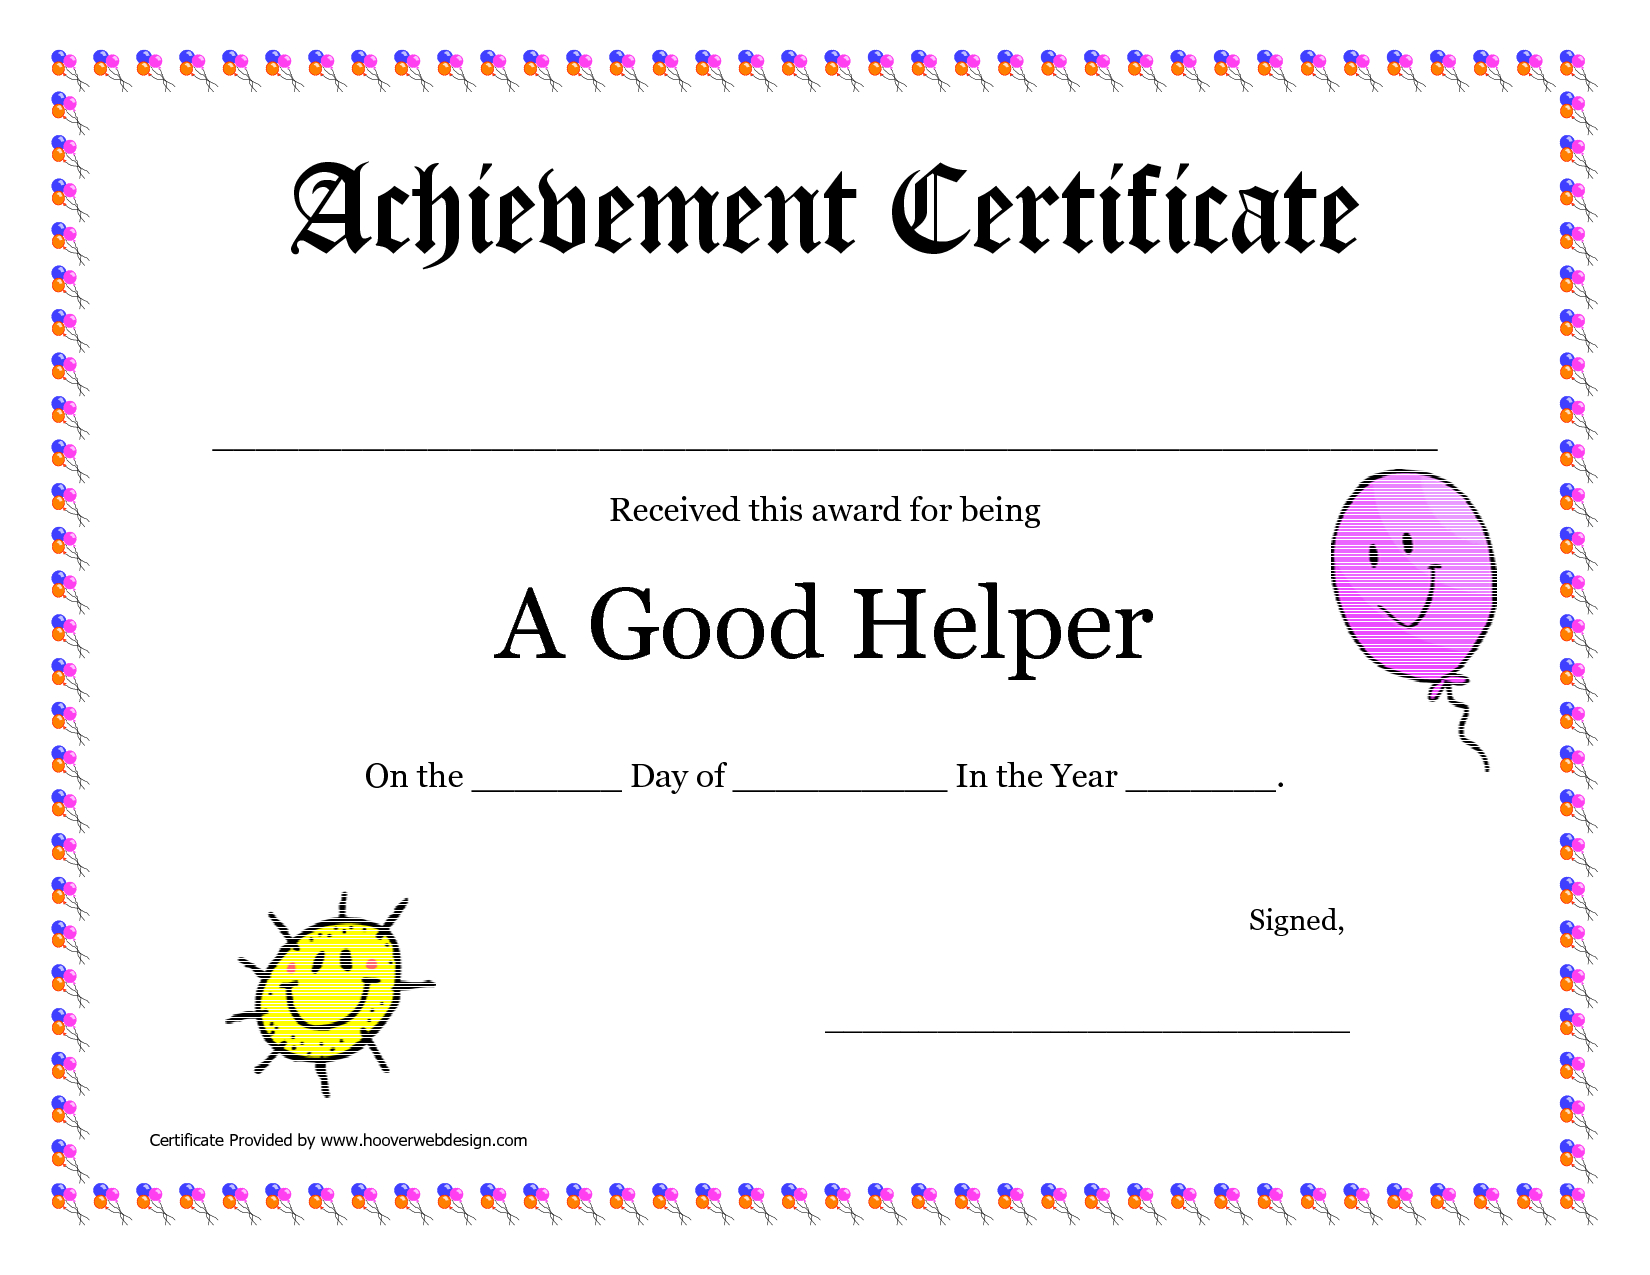 Printable Award Certificates For Teachers | Good Helper Printable - Free Printable Award Certificates For Elementary Students